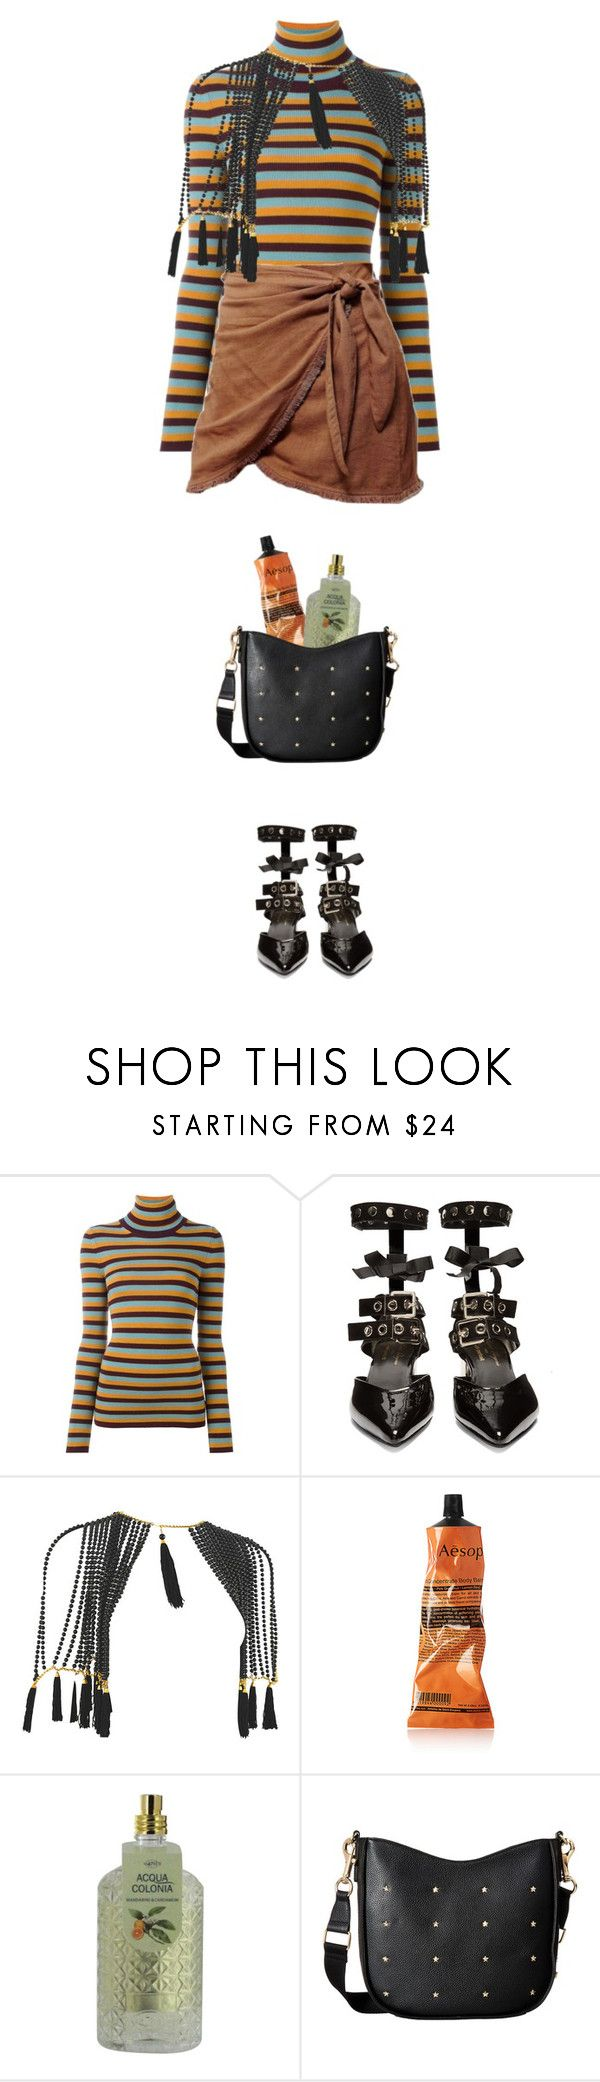 """Neutral Tones #2"" by lunevilleoswald ❤ liked on Polyvore featuring I'm Isola Marras, Robert Clergerie, Aesop, 4711 and Tommy Hilfiger"